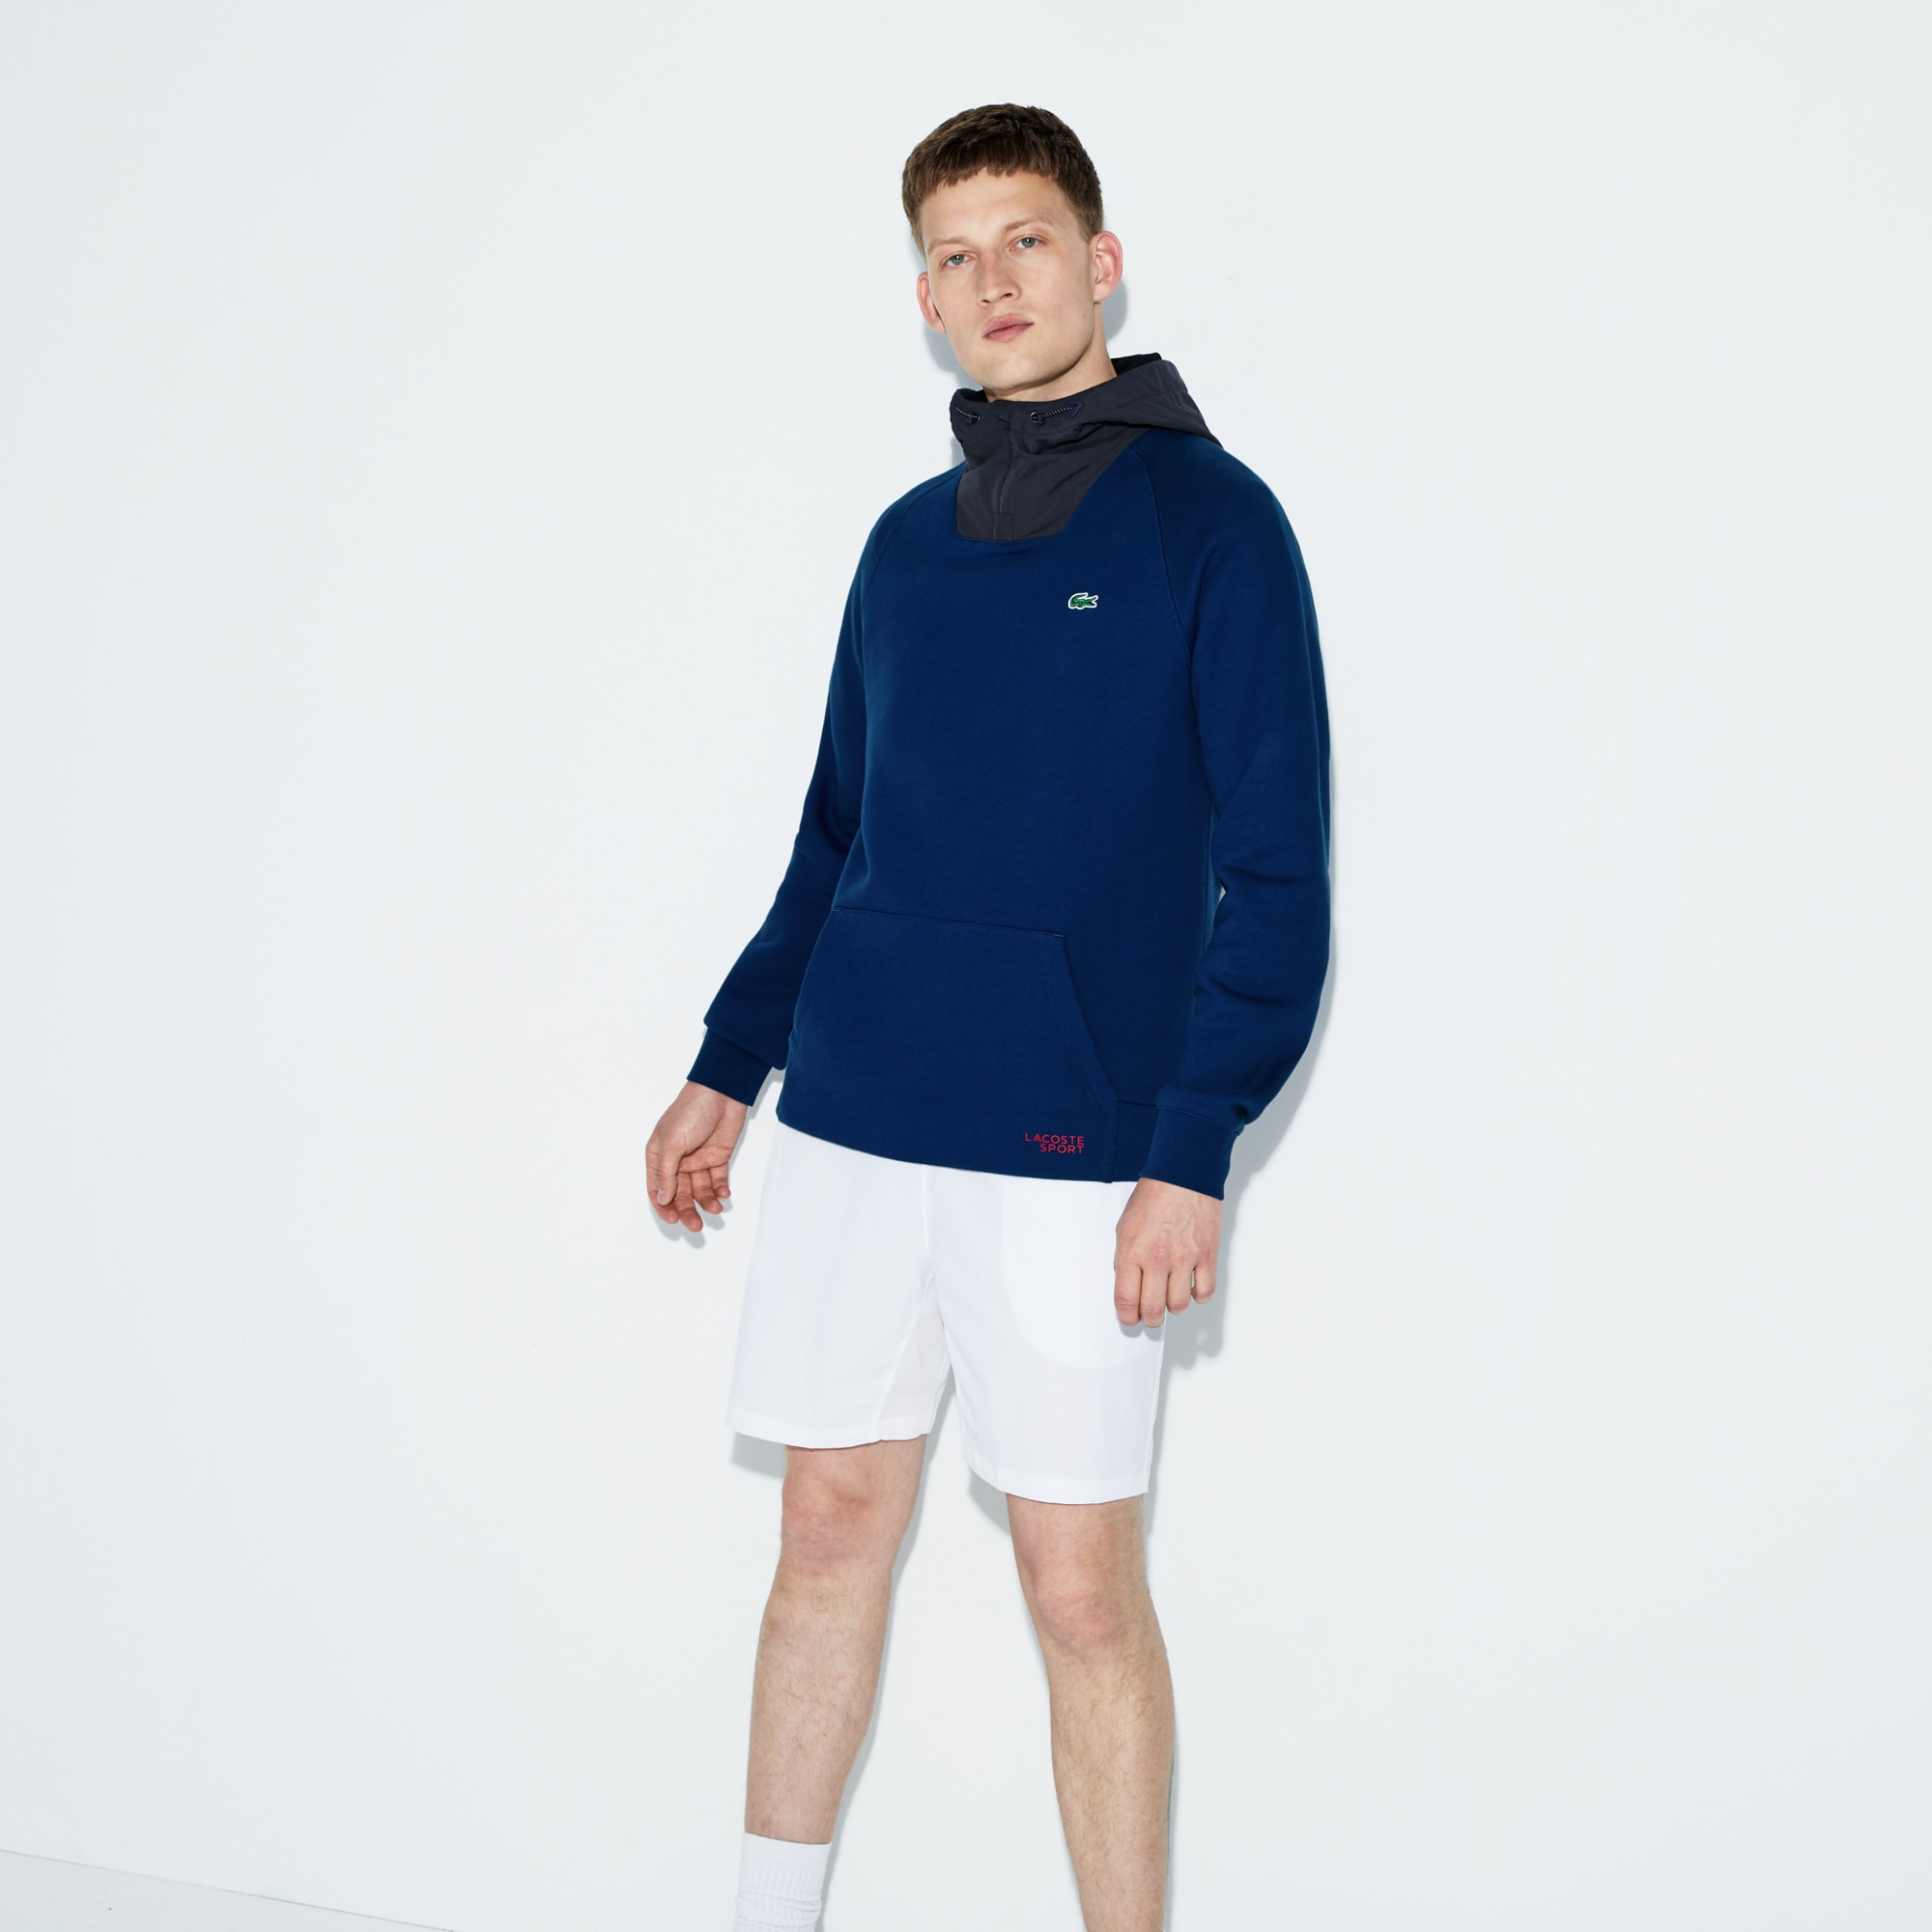 Men's Lacoste SPORT Contrast Hood Fleece Tennis Sweatshirt